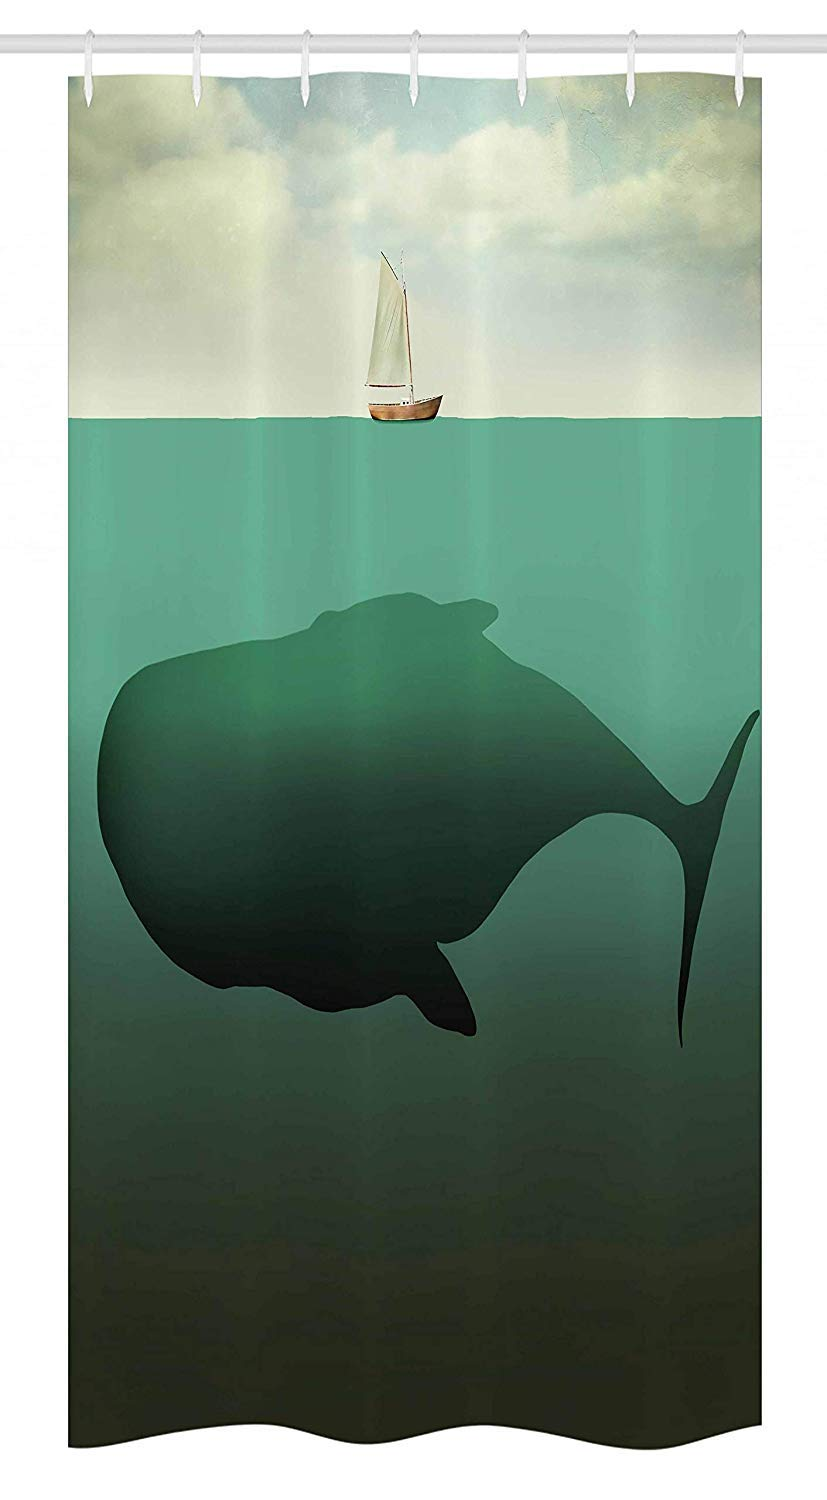 Custom Made Fantasy Stall Shower Curtain, Surreal Giant Whale in The Middle of Sea and Little Sailboat on The Surface Print, Bathroom Fabric Curtains Bath Waterproof, 72 x 84 Inches Green Beige